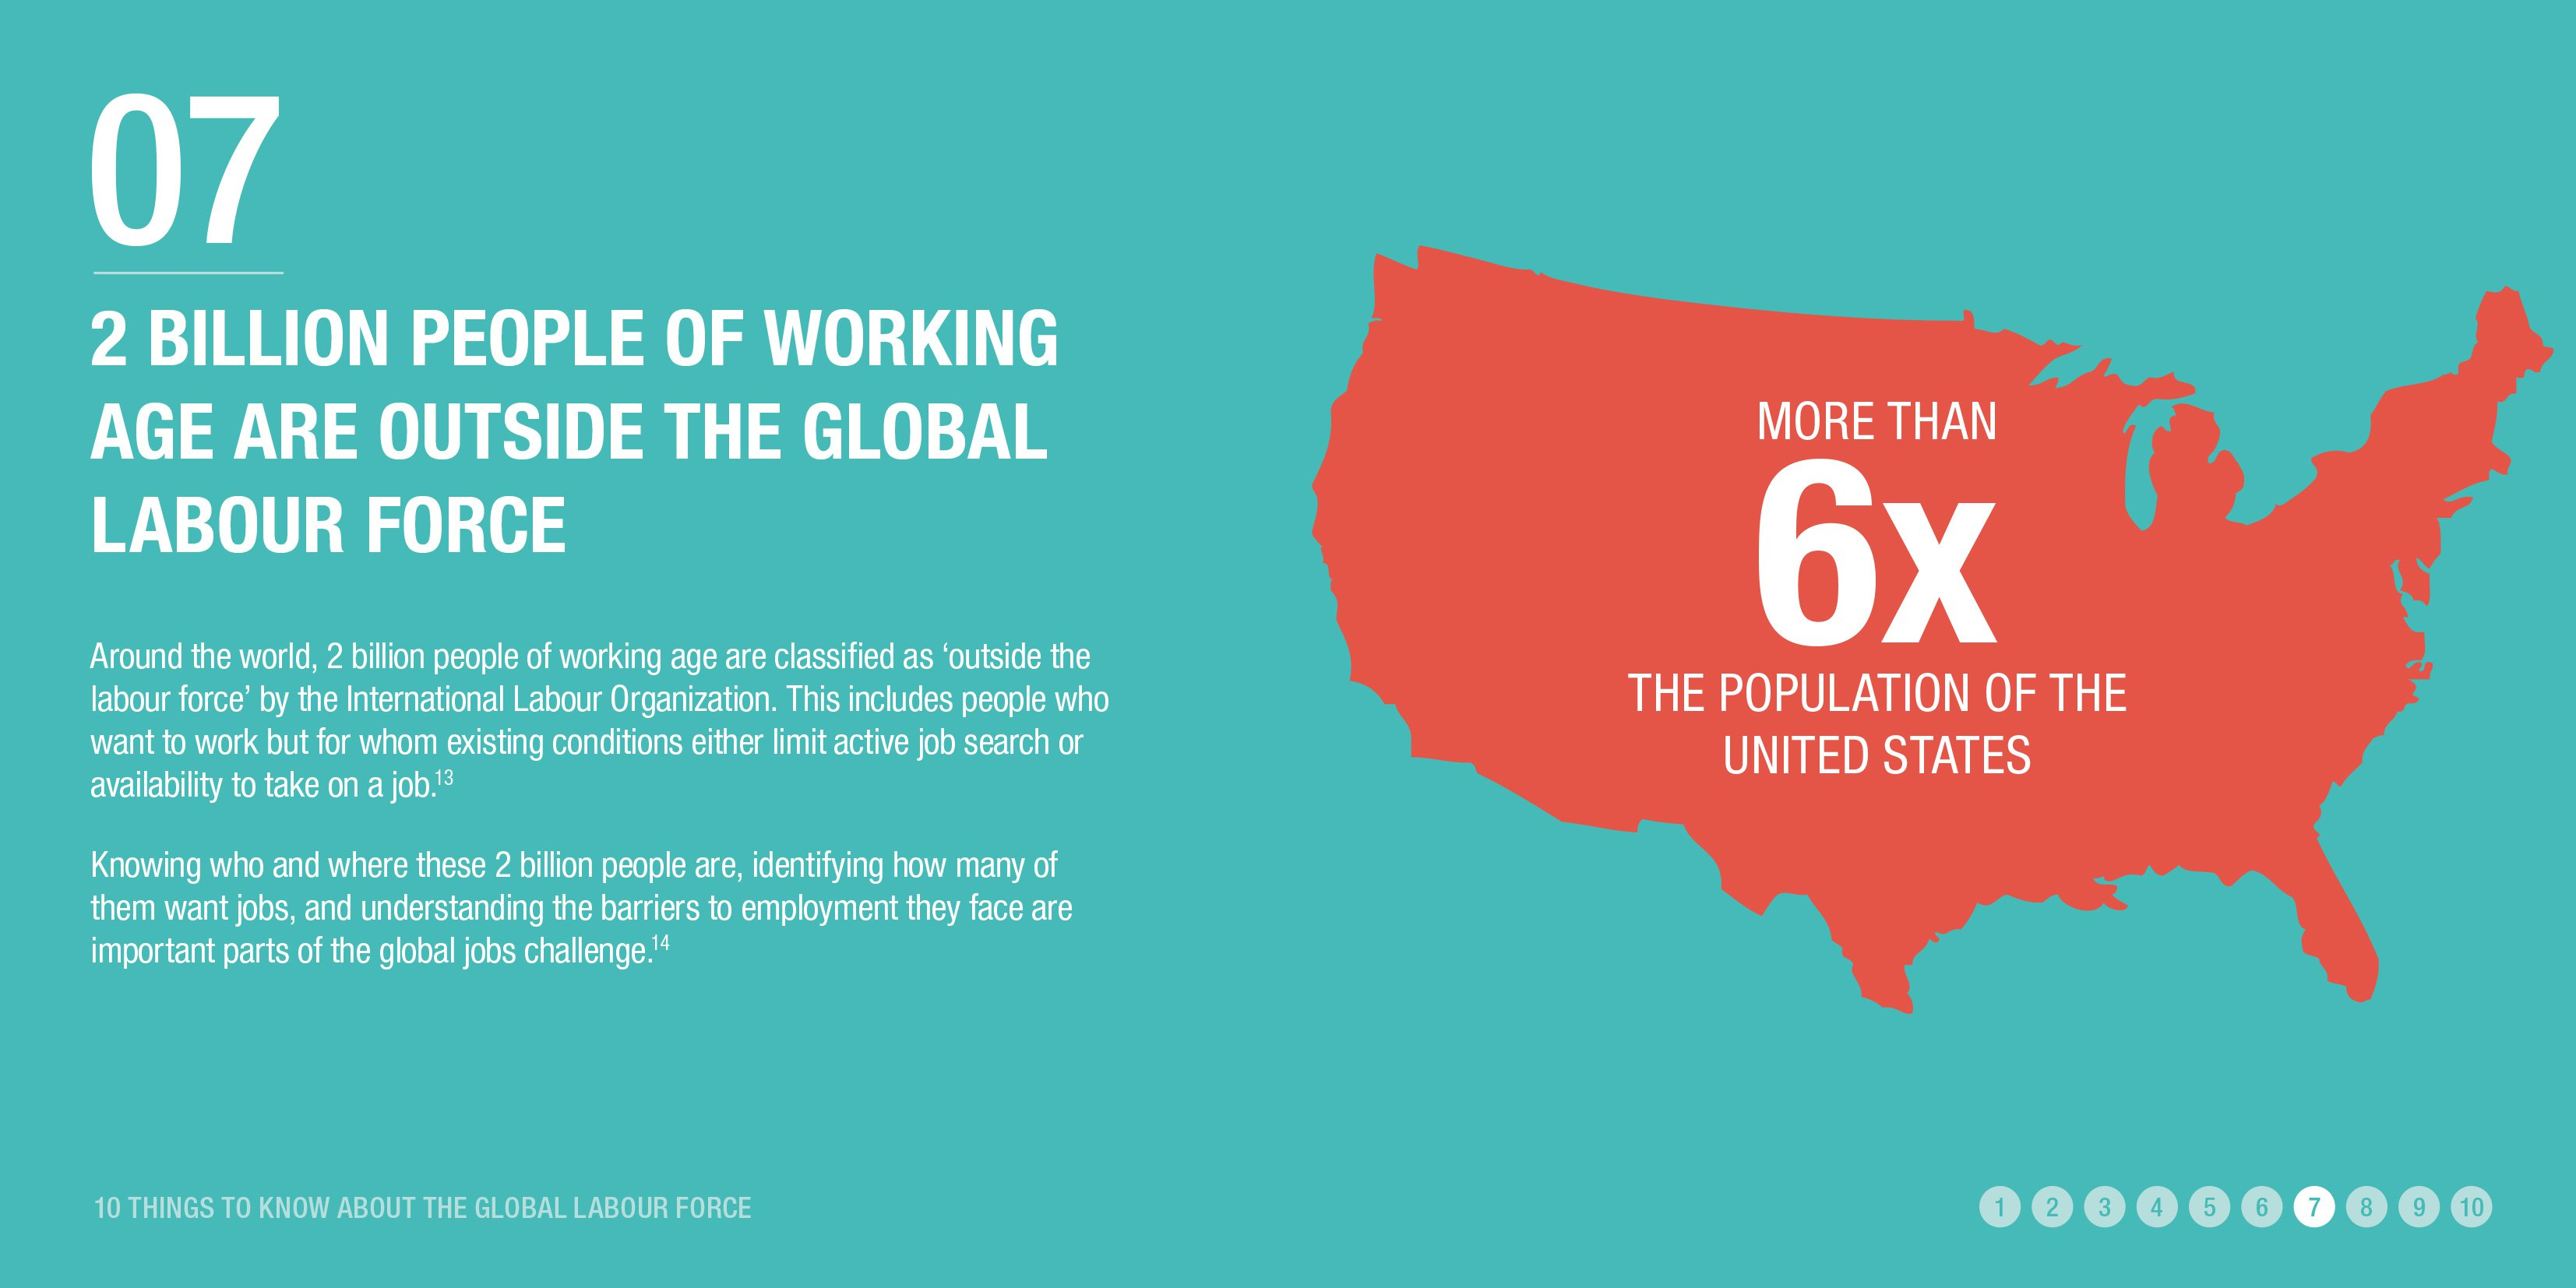 2 billion people of working age are outside the global labour force